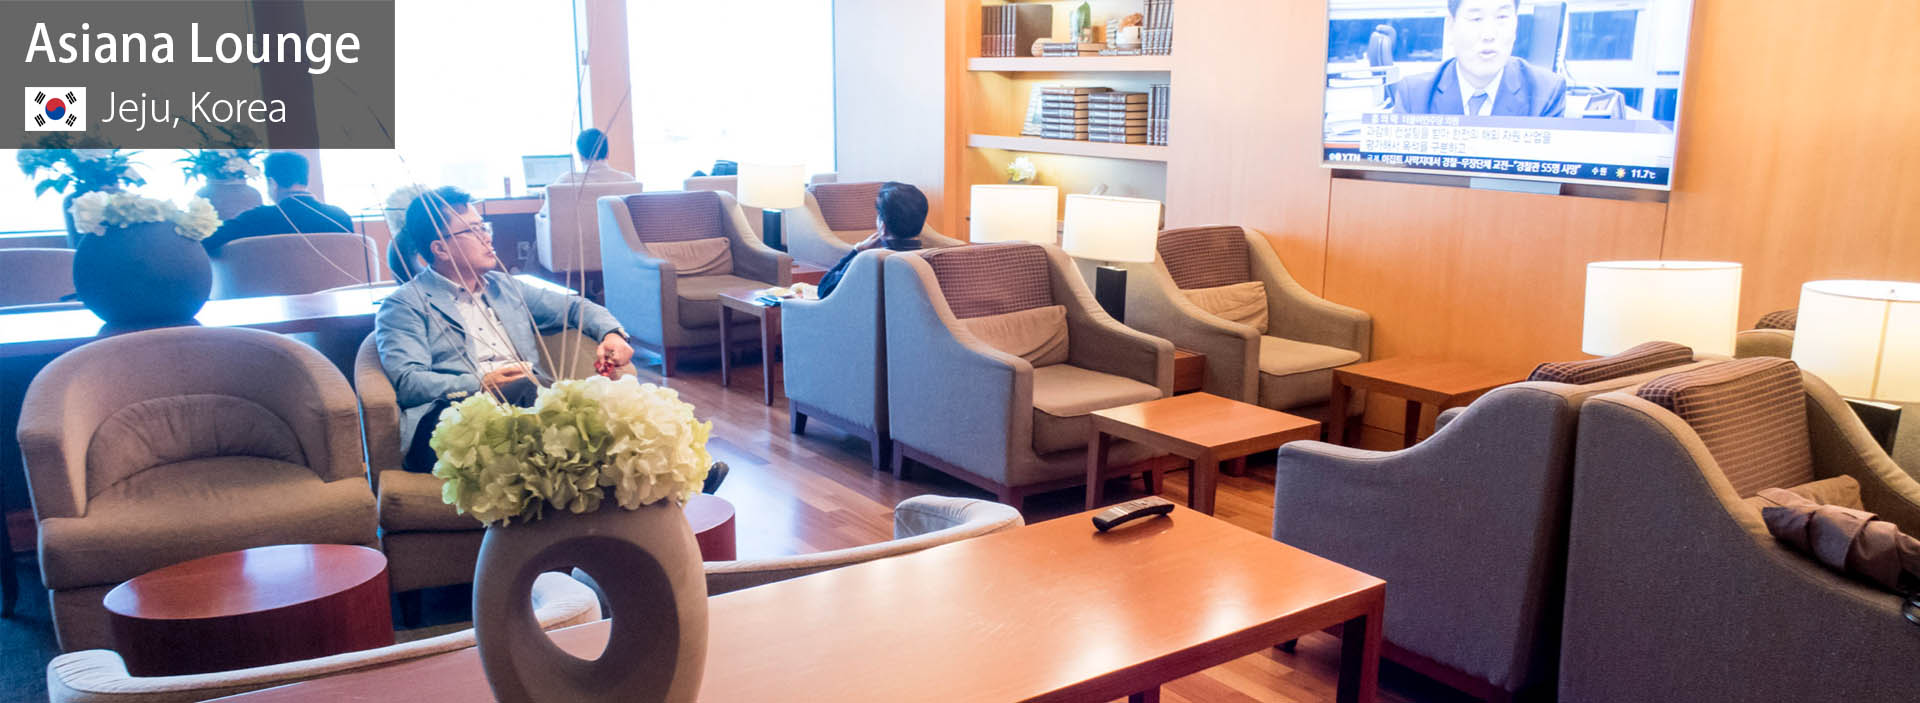 Lounge Review: Asiana Lounge at Jeju International